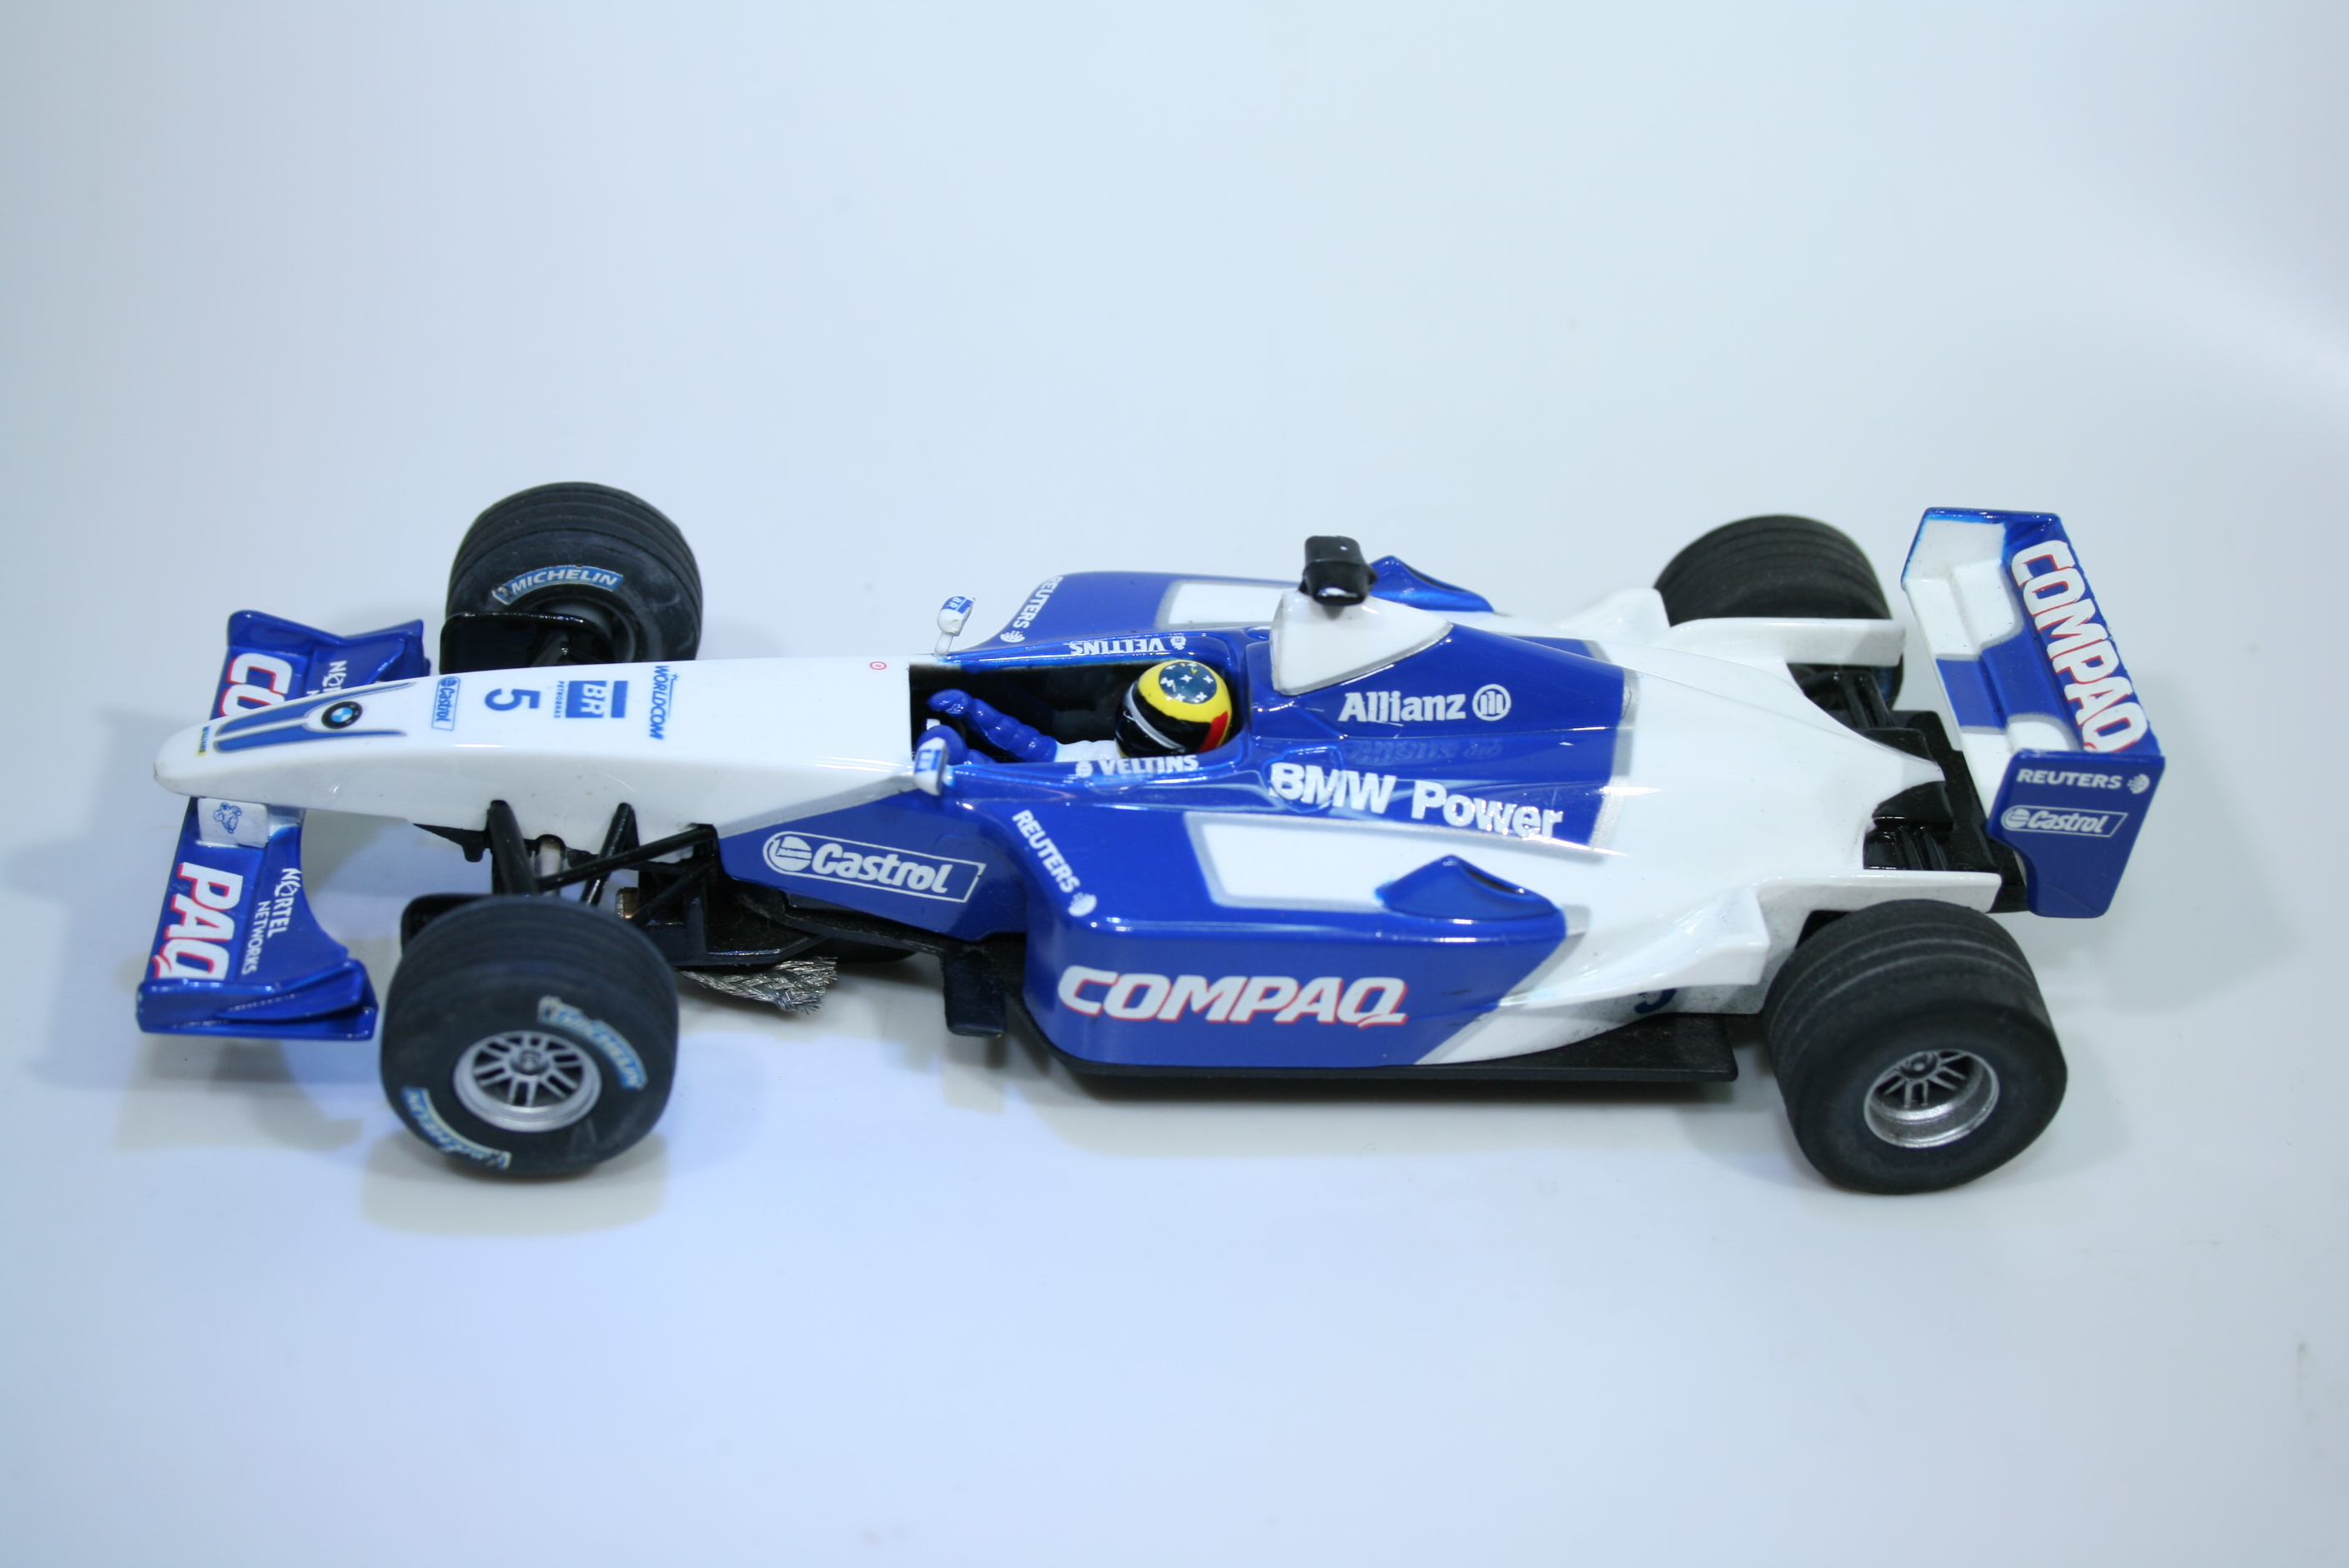 1421 Williams FW23 2001 R Schumacher Carrera 25437 2002 Boxed